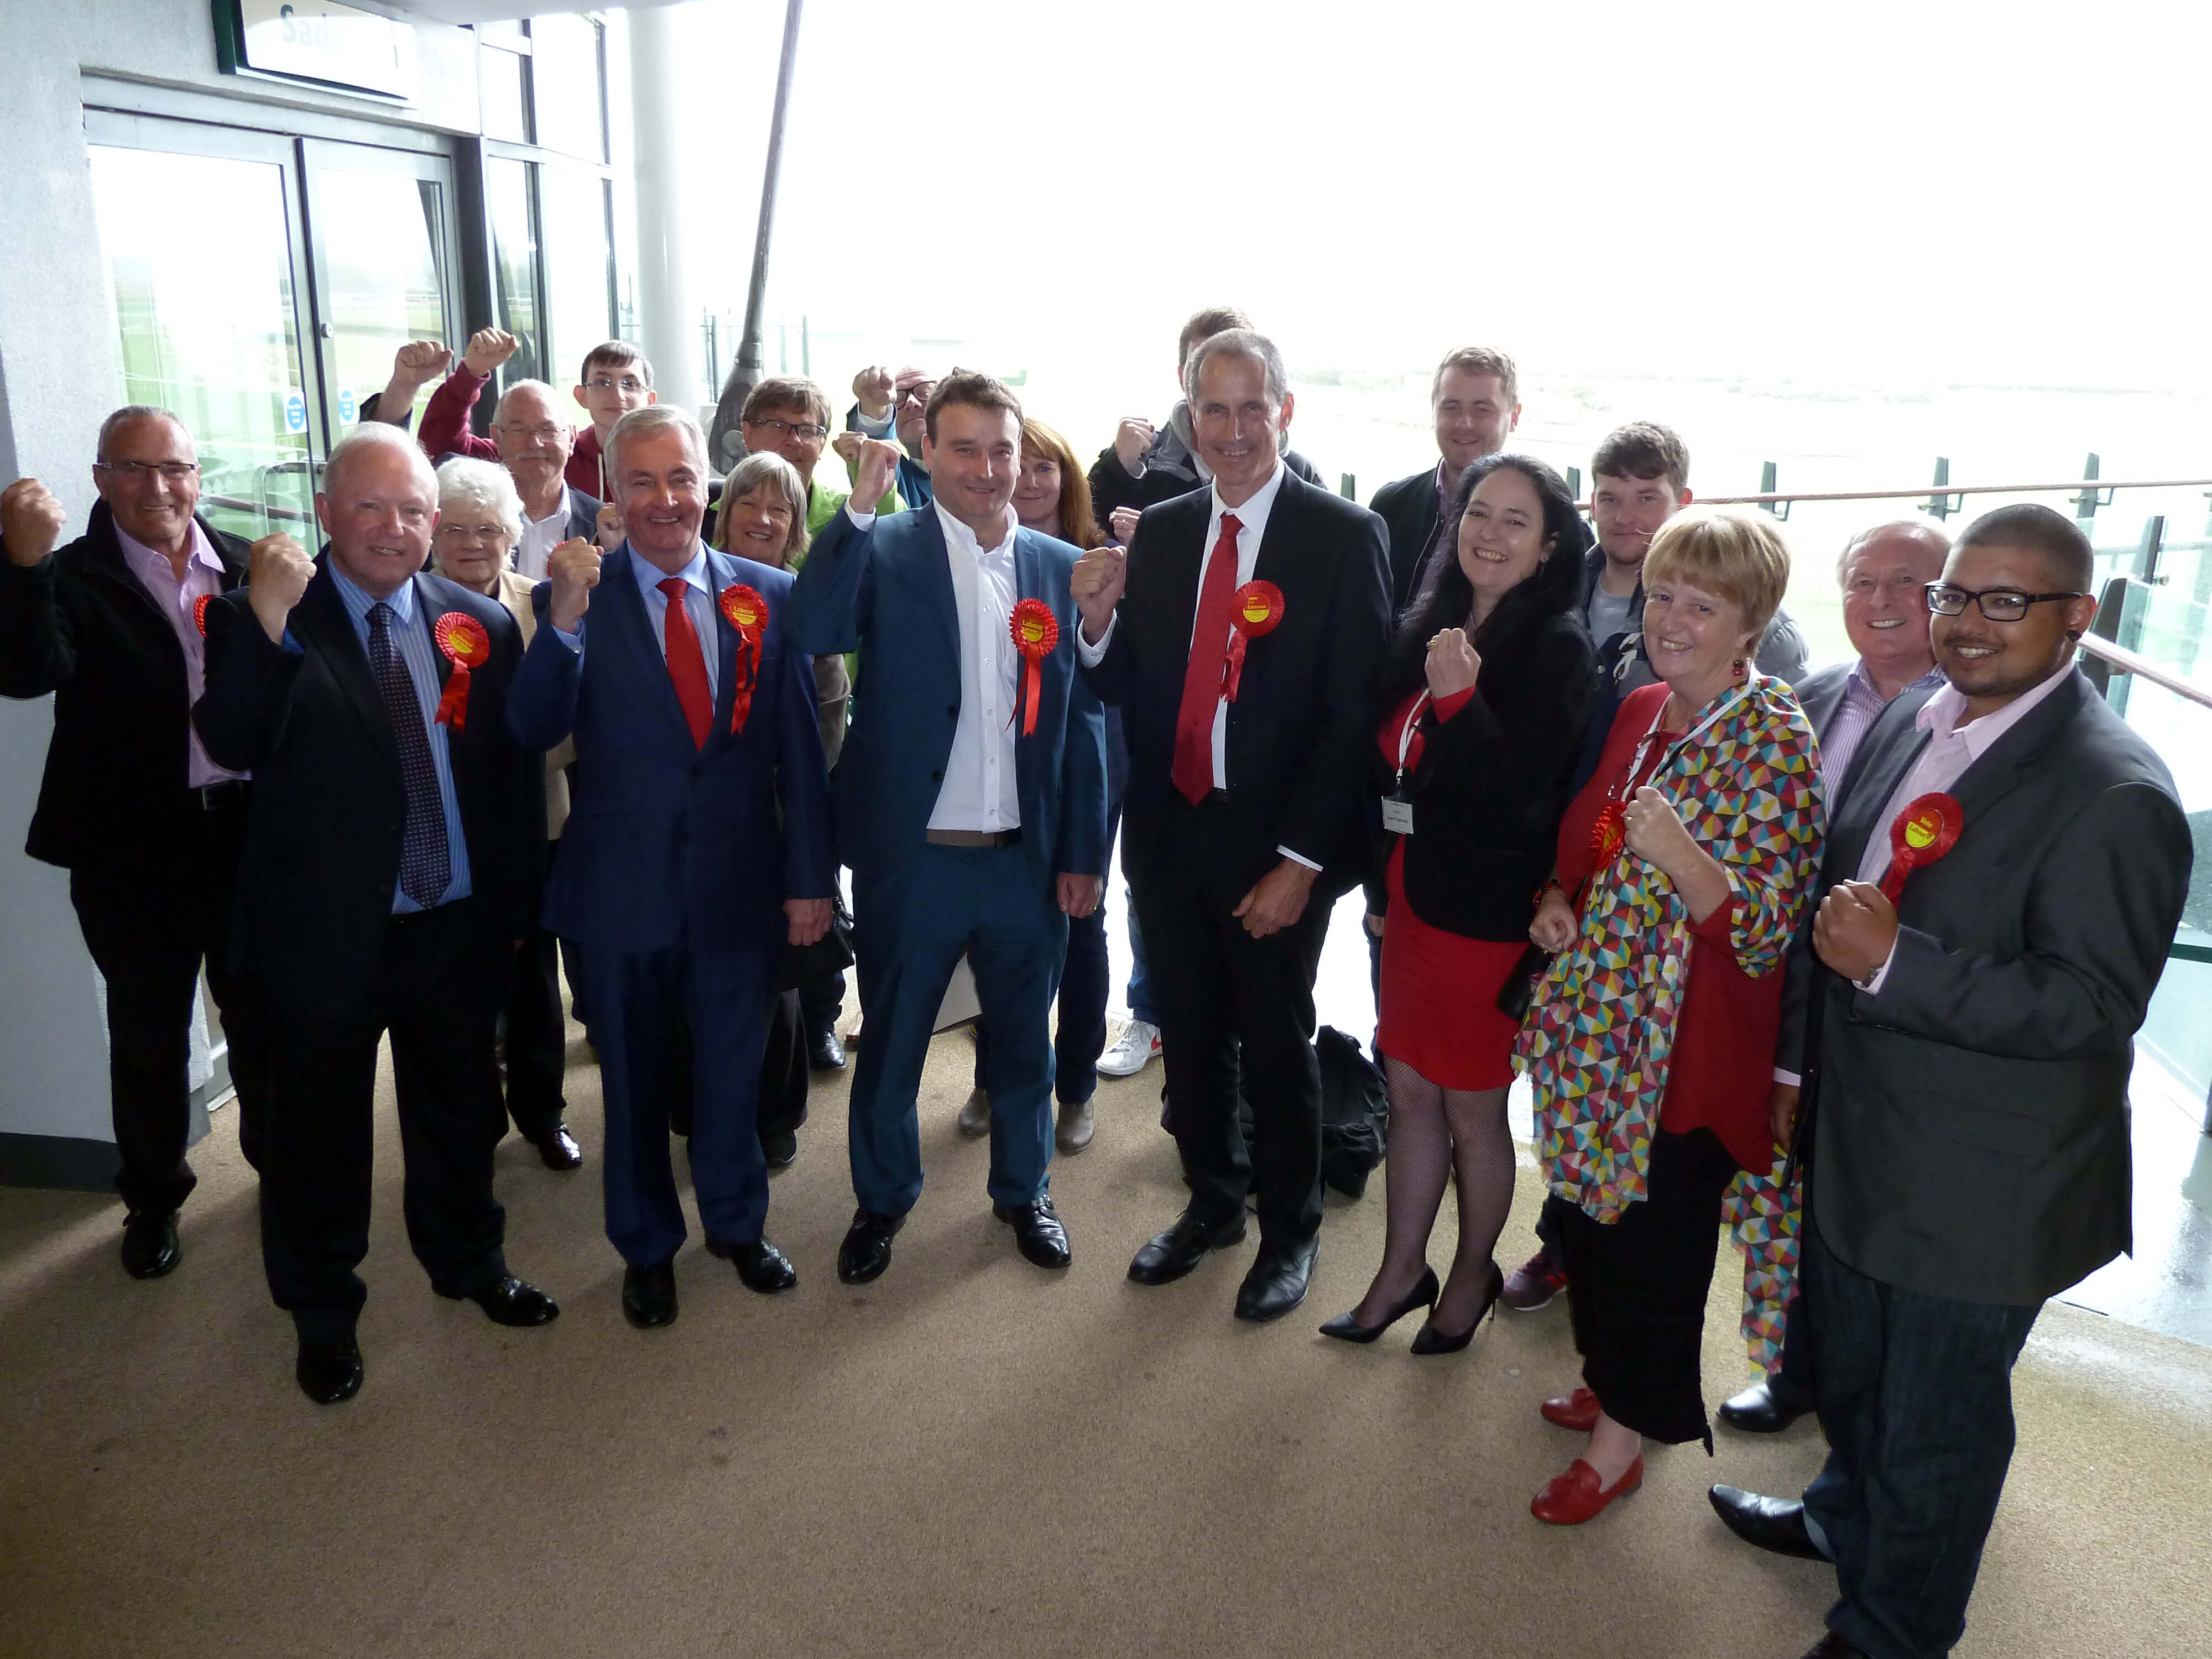 Sefton Central Labour MP Bill Esterson and supporters celebrate being first past the post in the General Election in Sefton Central following the count at Aintree Racecourse.